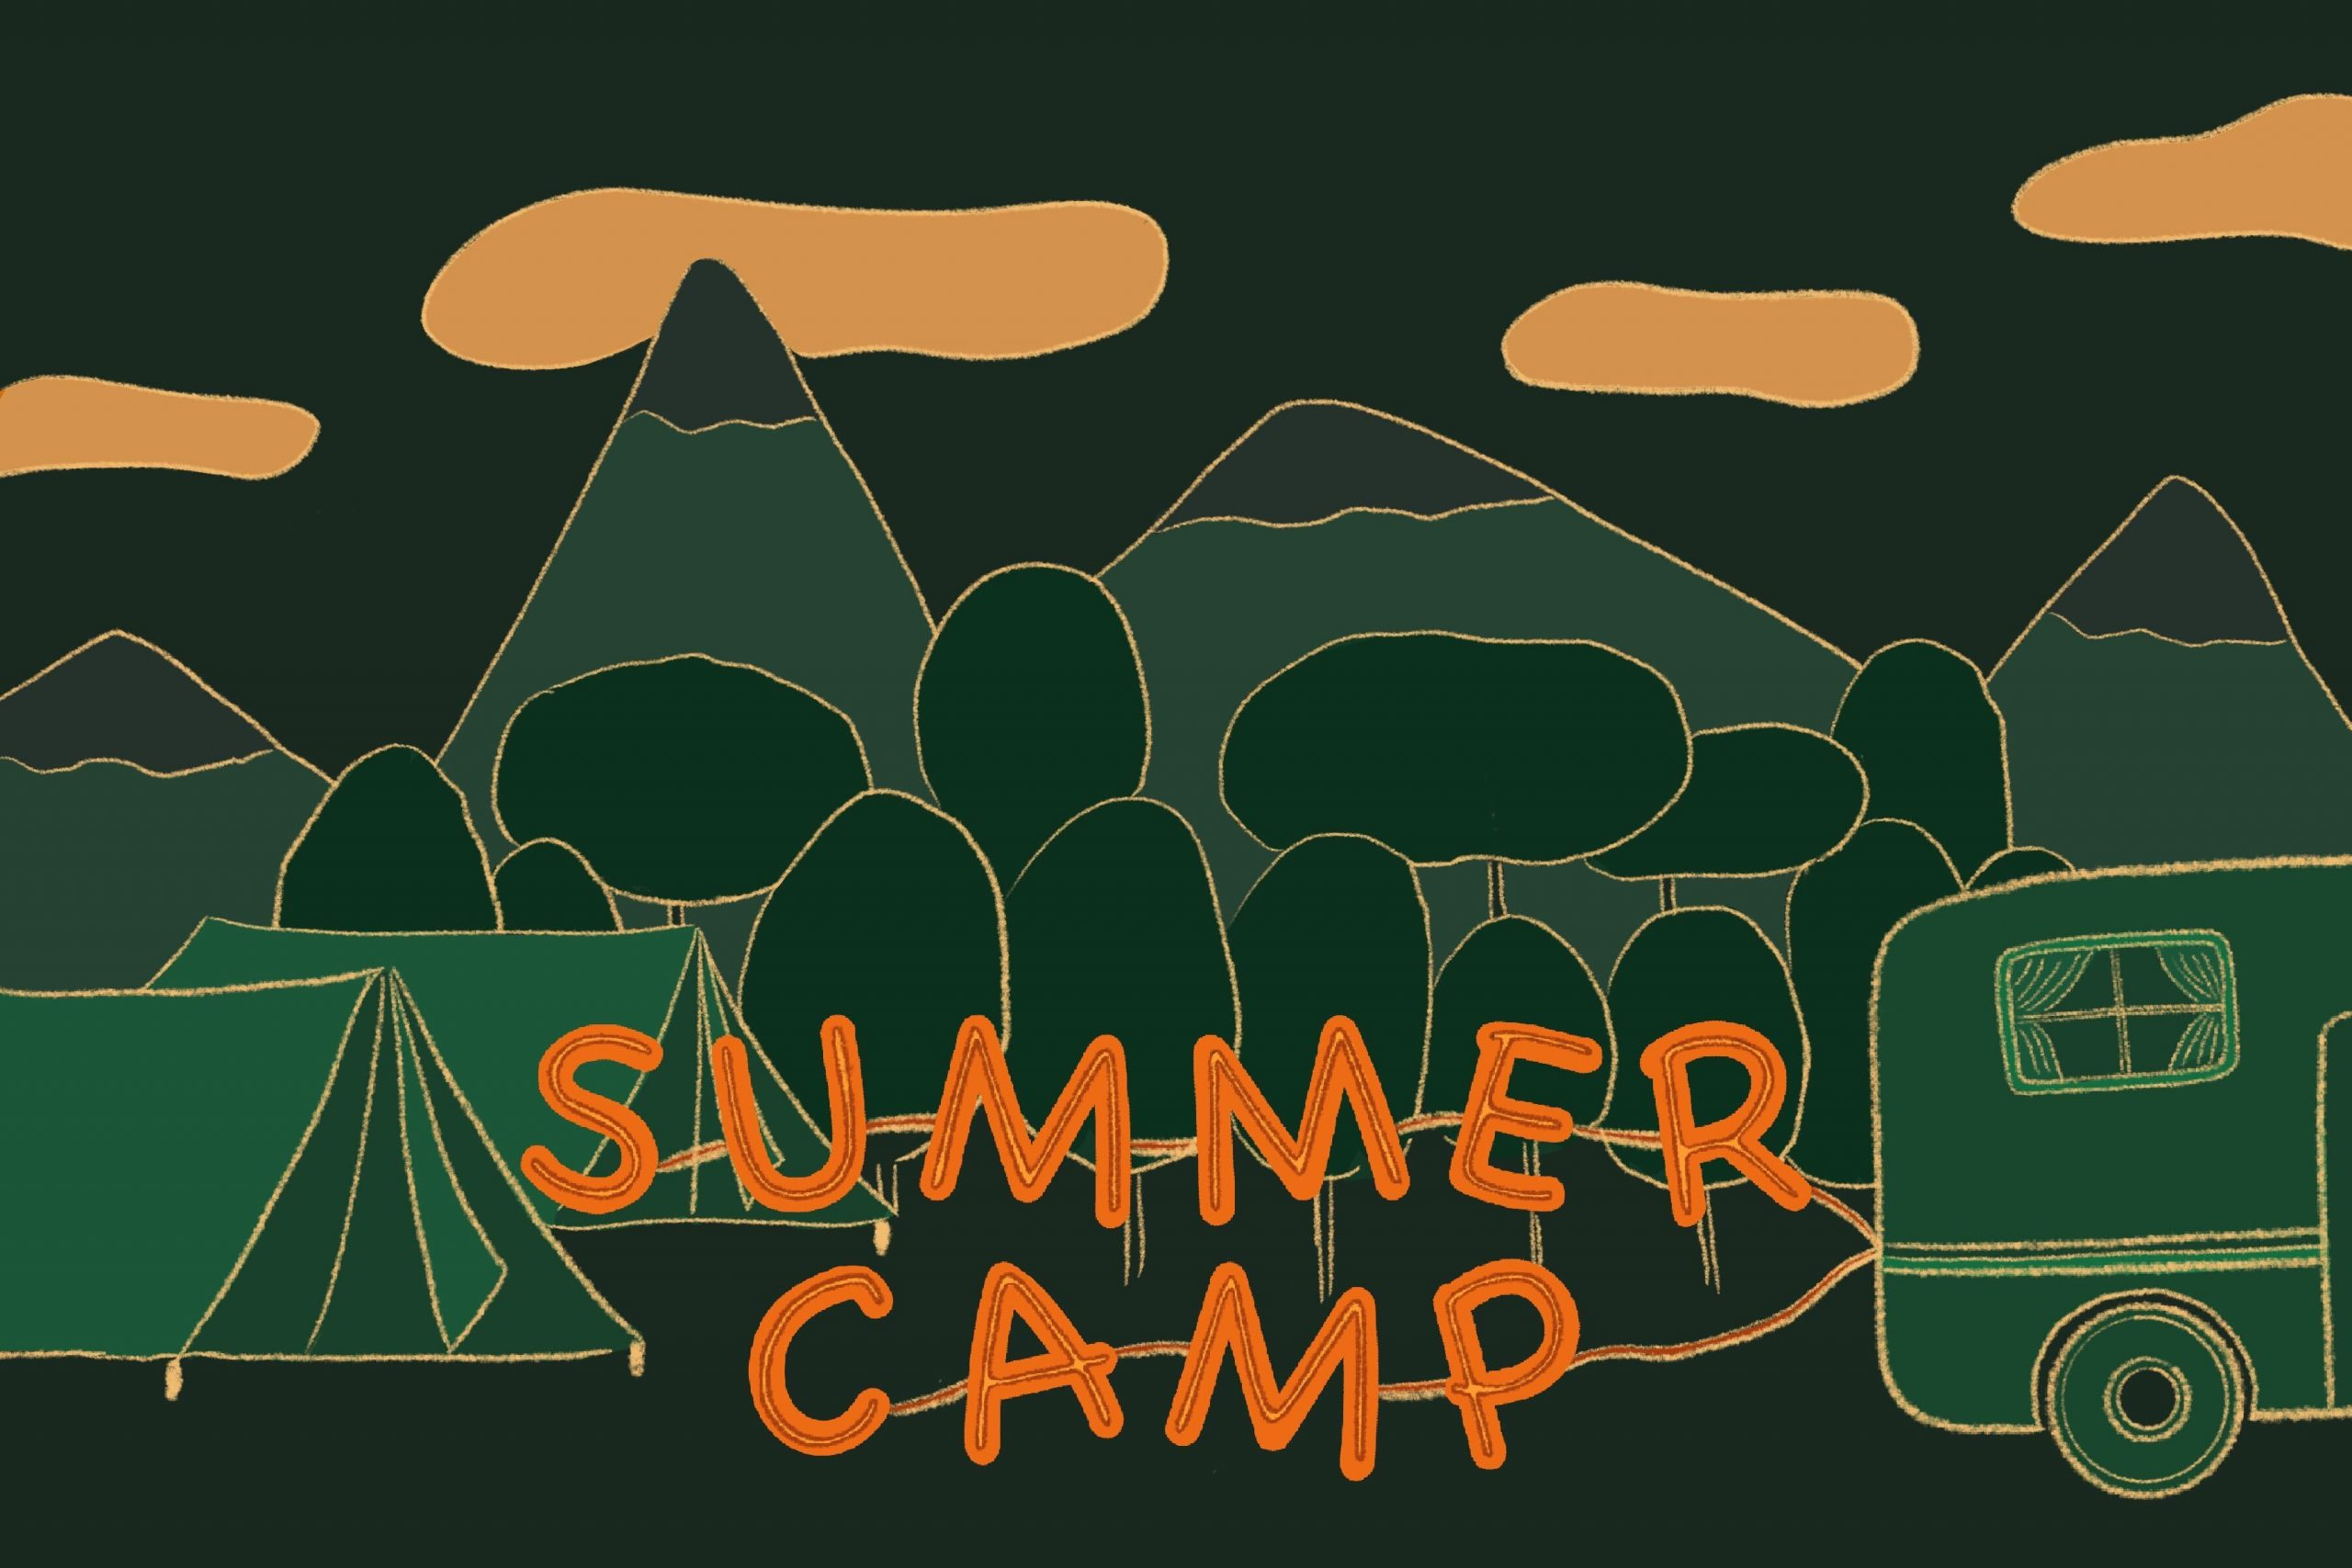 Illustration of green mountains and trees as seen at a sleepaway camp, with summer camp in orange text